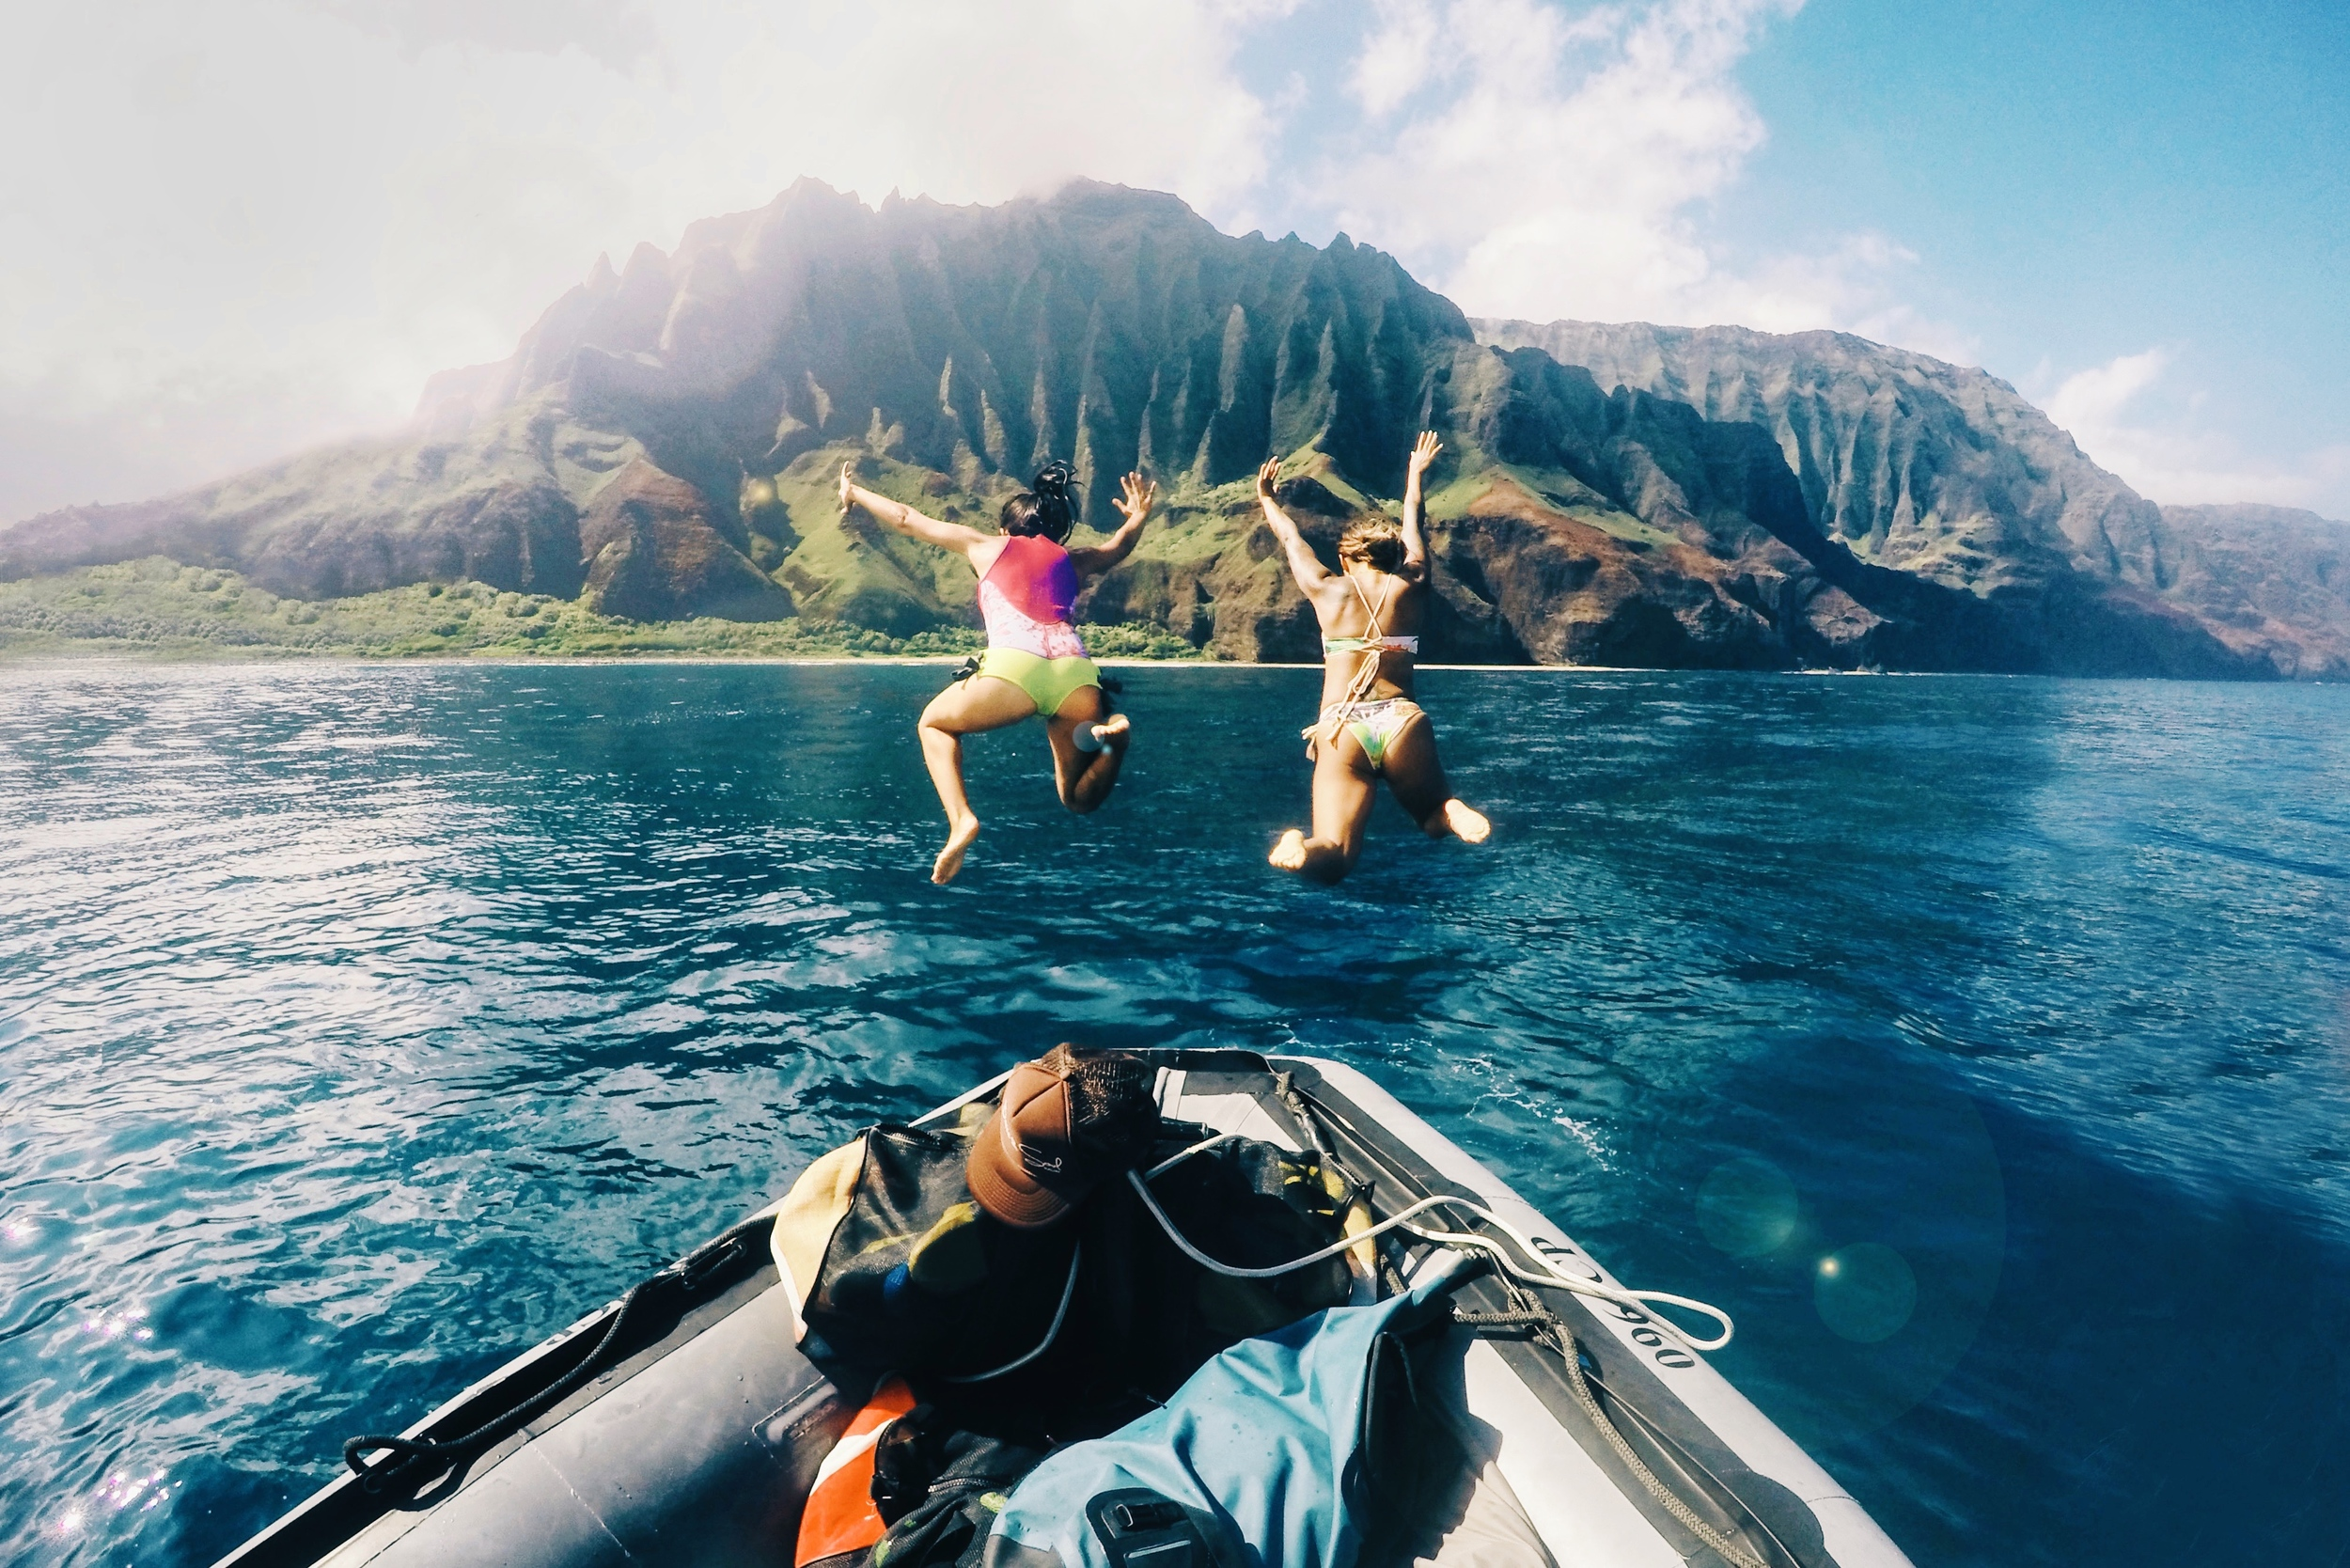 Go Blue Adventures Nā Pali Coast Tour